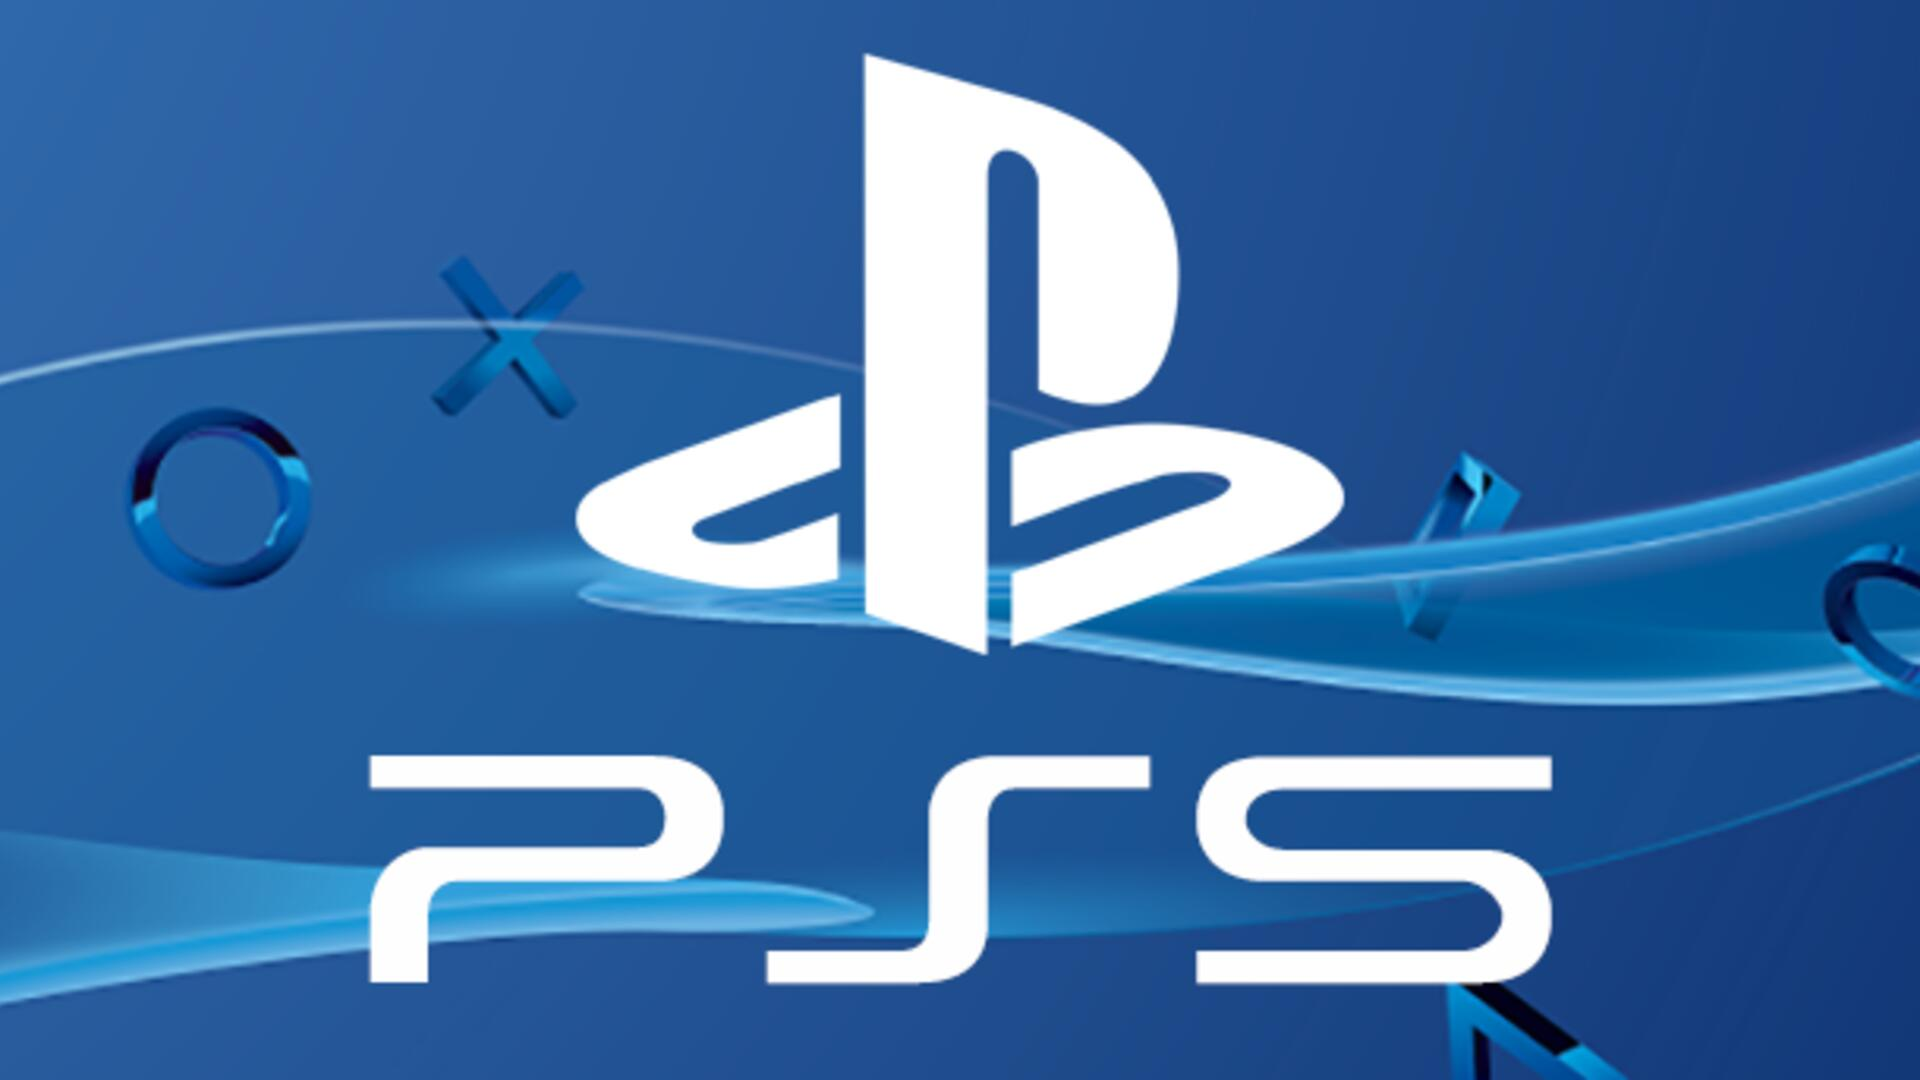 PS5 Release Date Revealed - Controller, Hard Drive and Ray Tracing Detailed